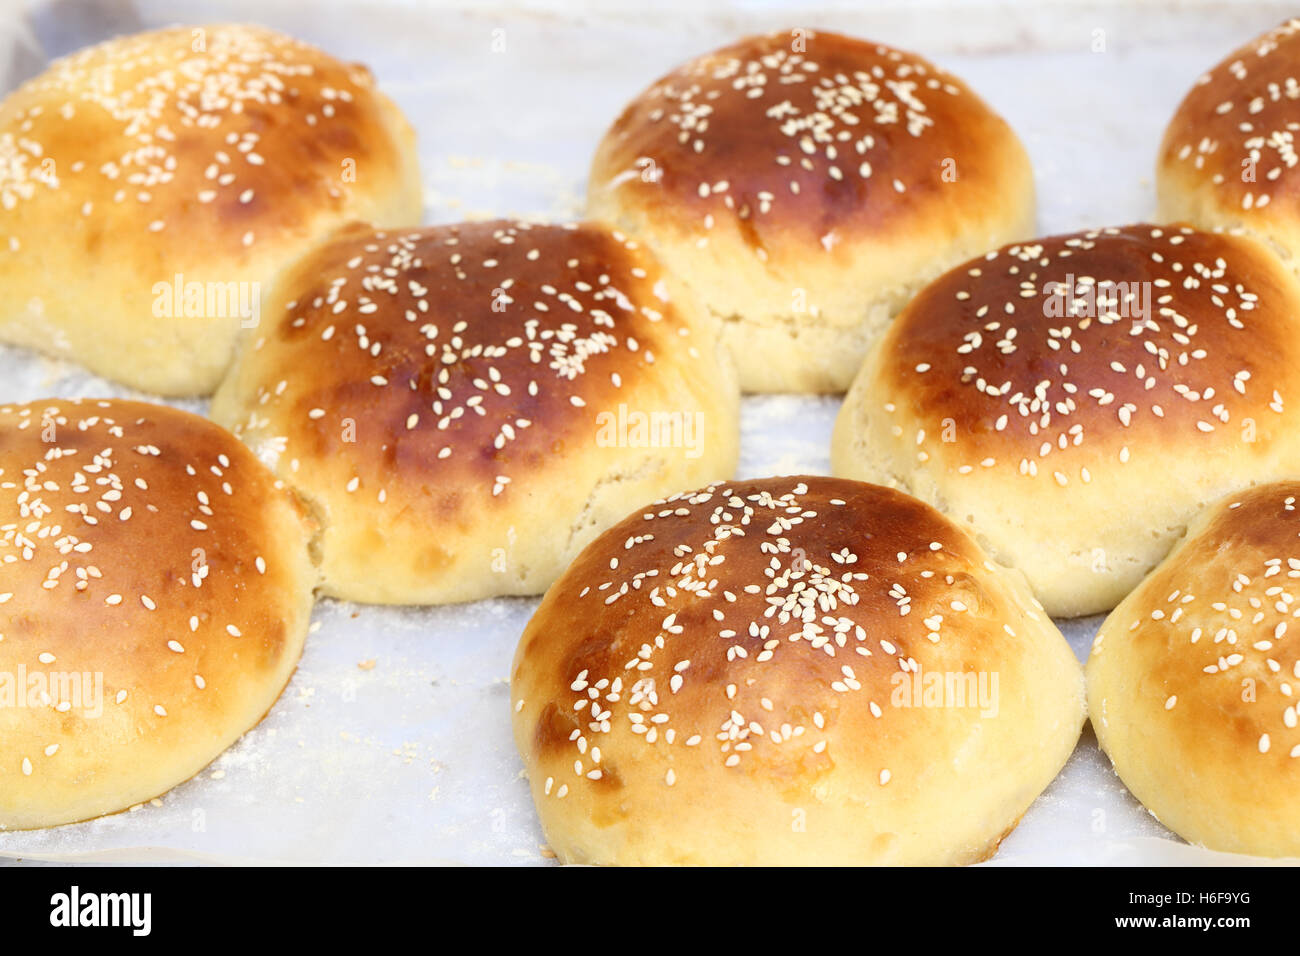 Freshly made sesame seed topped burger buns, fresh from the oven and still joined together on the baking tray - Stock Image